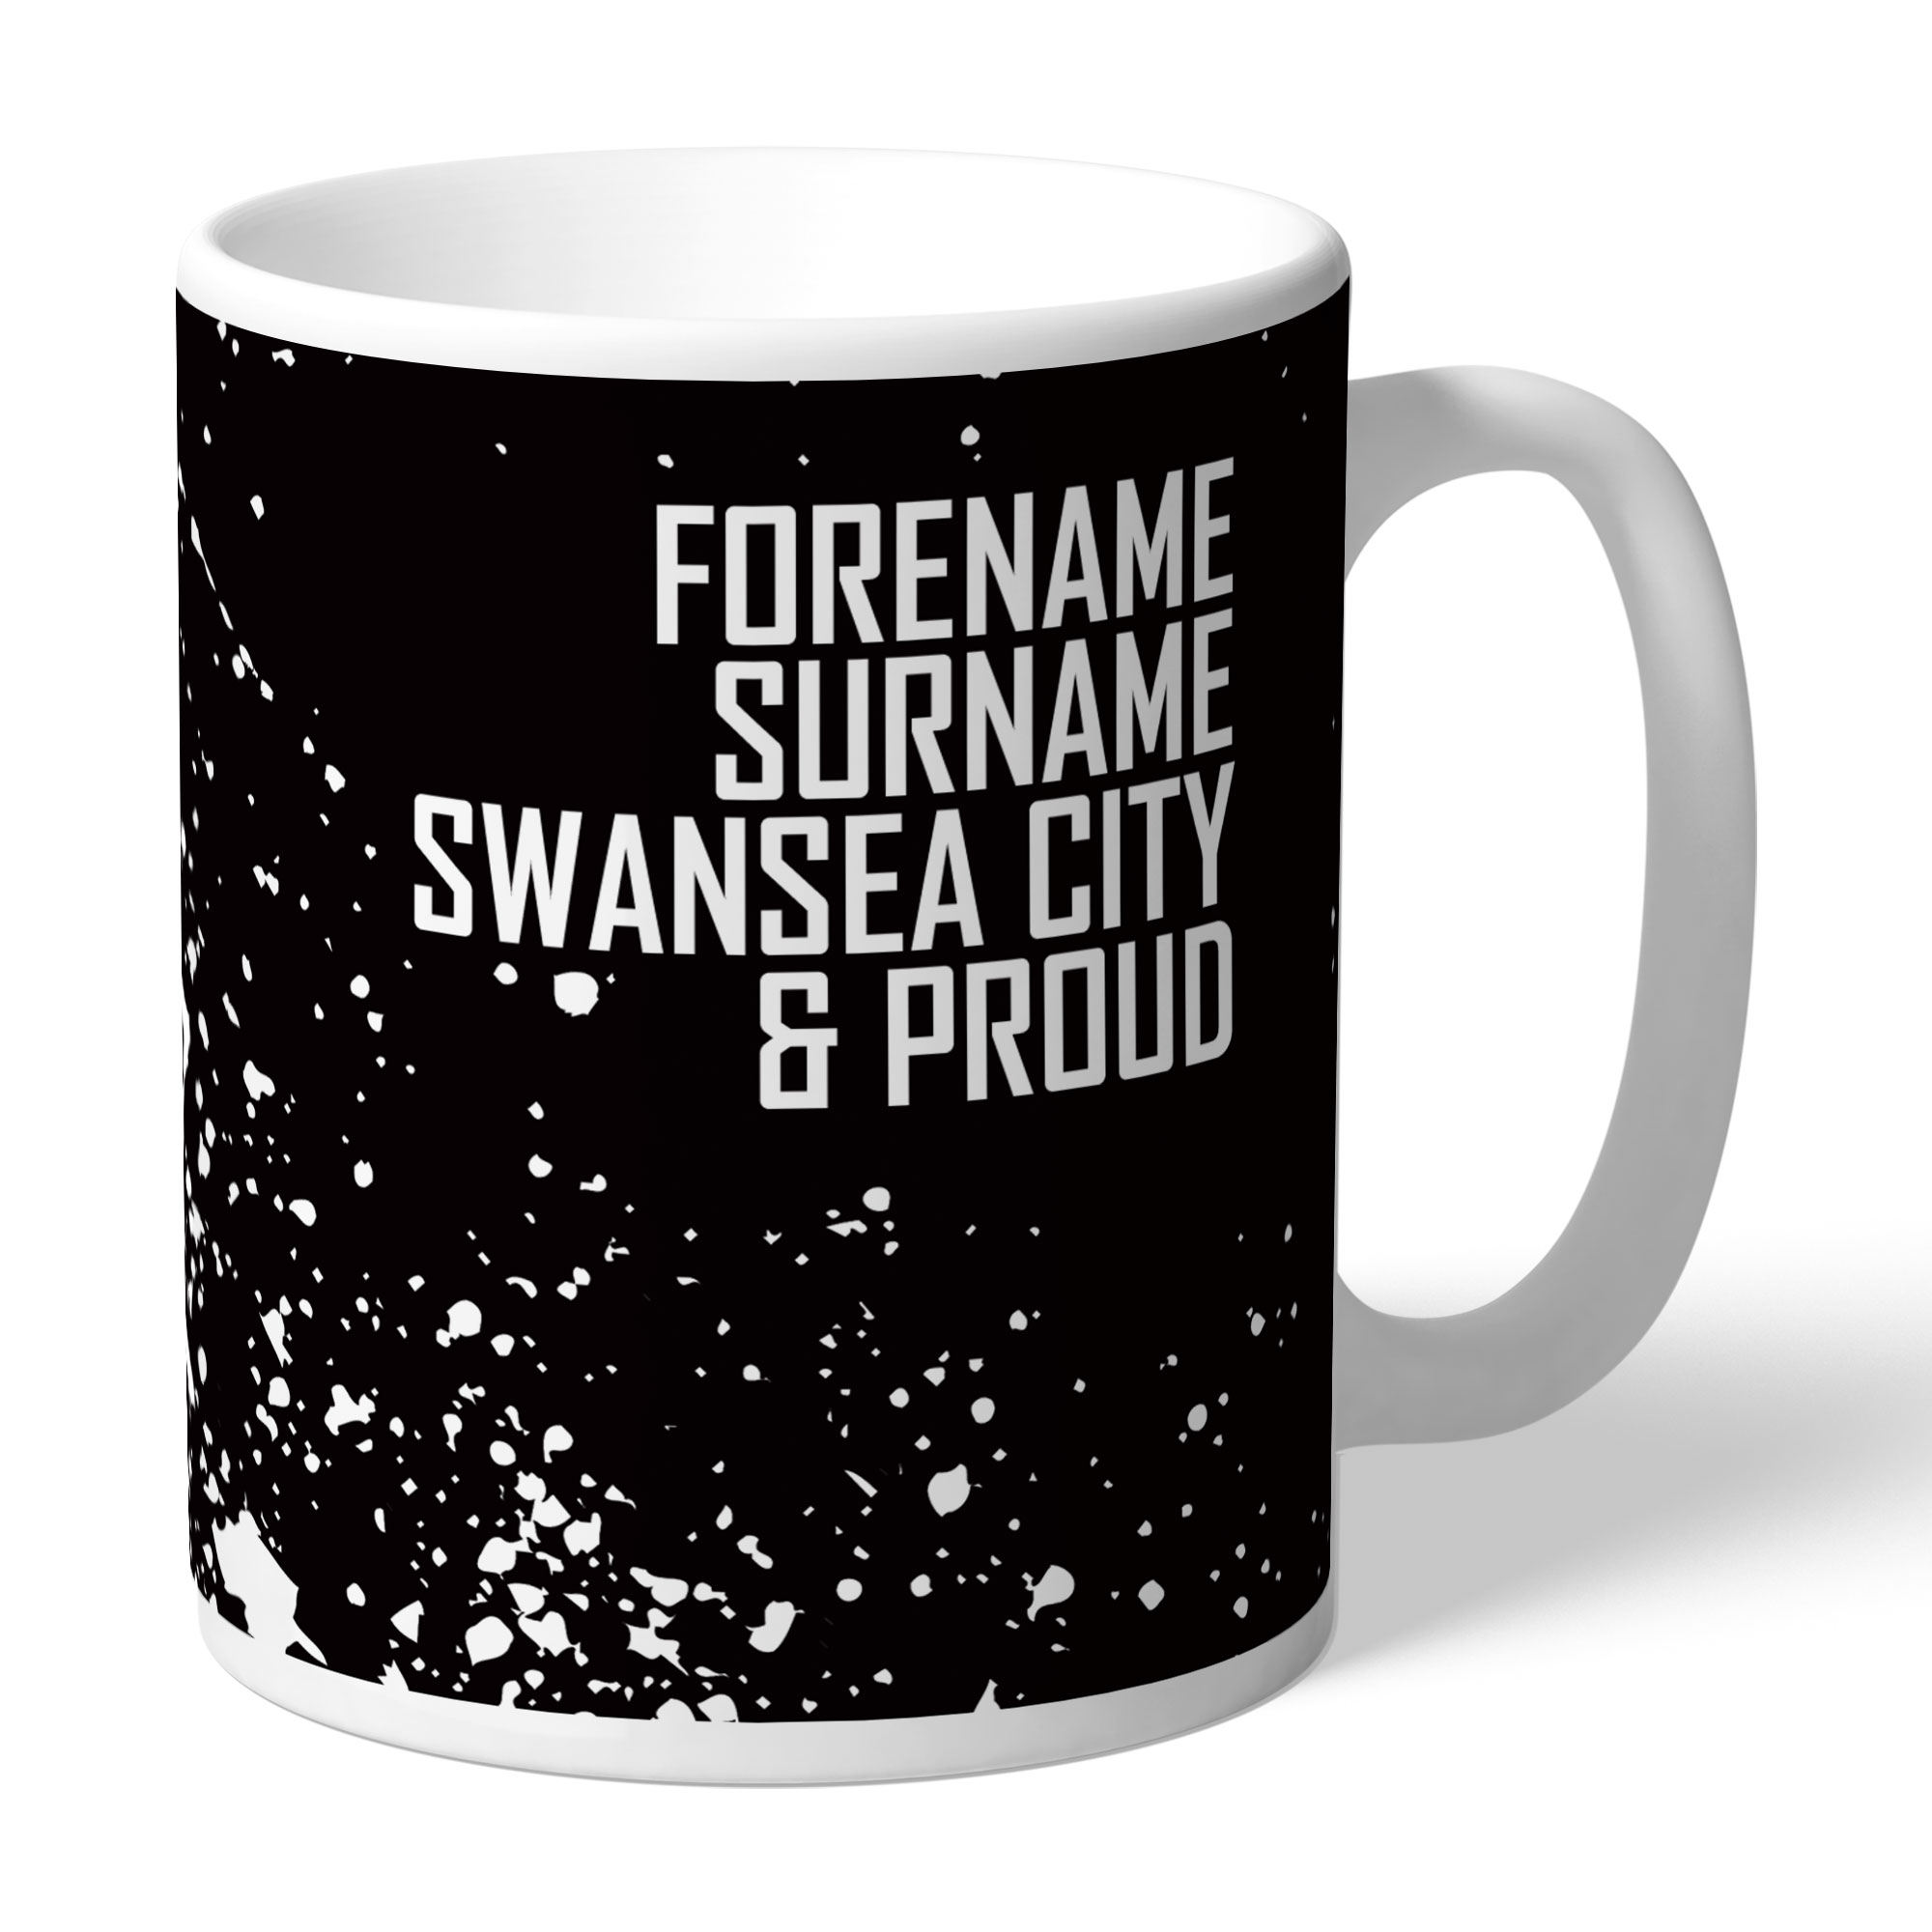 Swansea City AFC Proud Mug